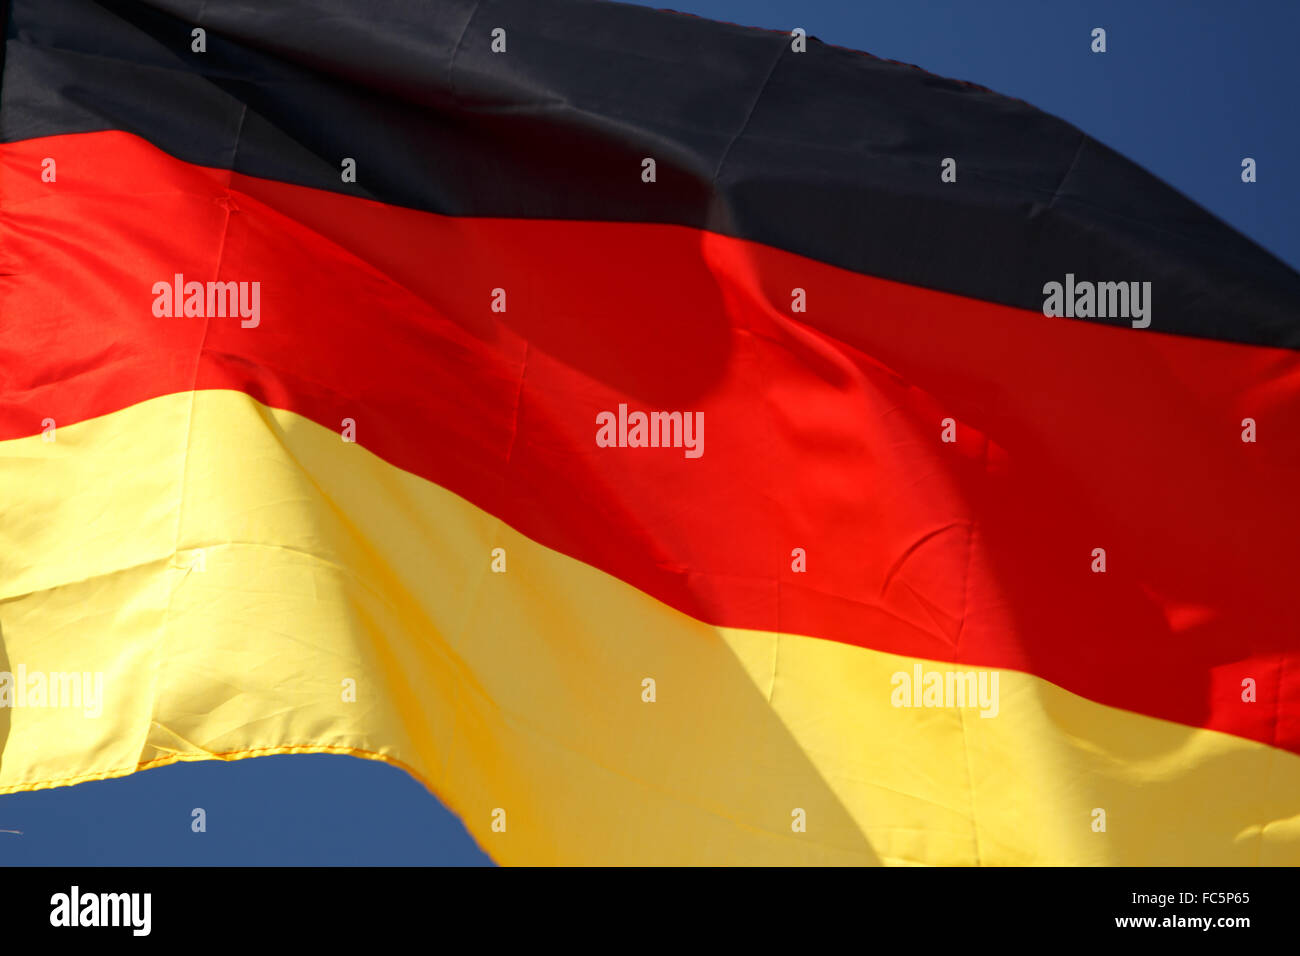 Flag of Germany - Stock Image